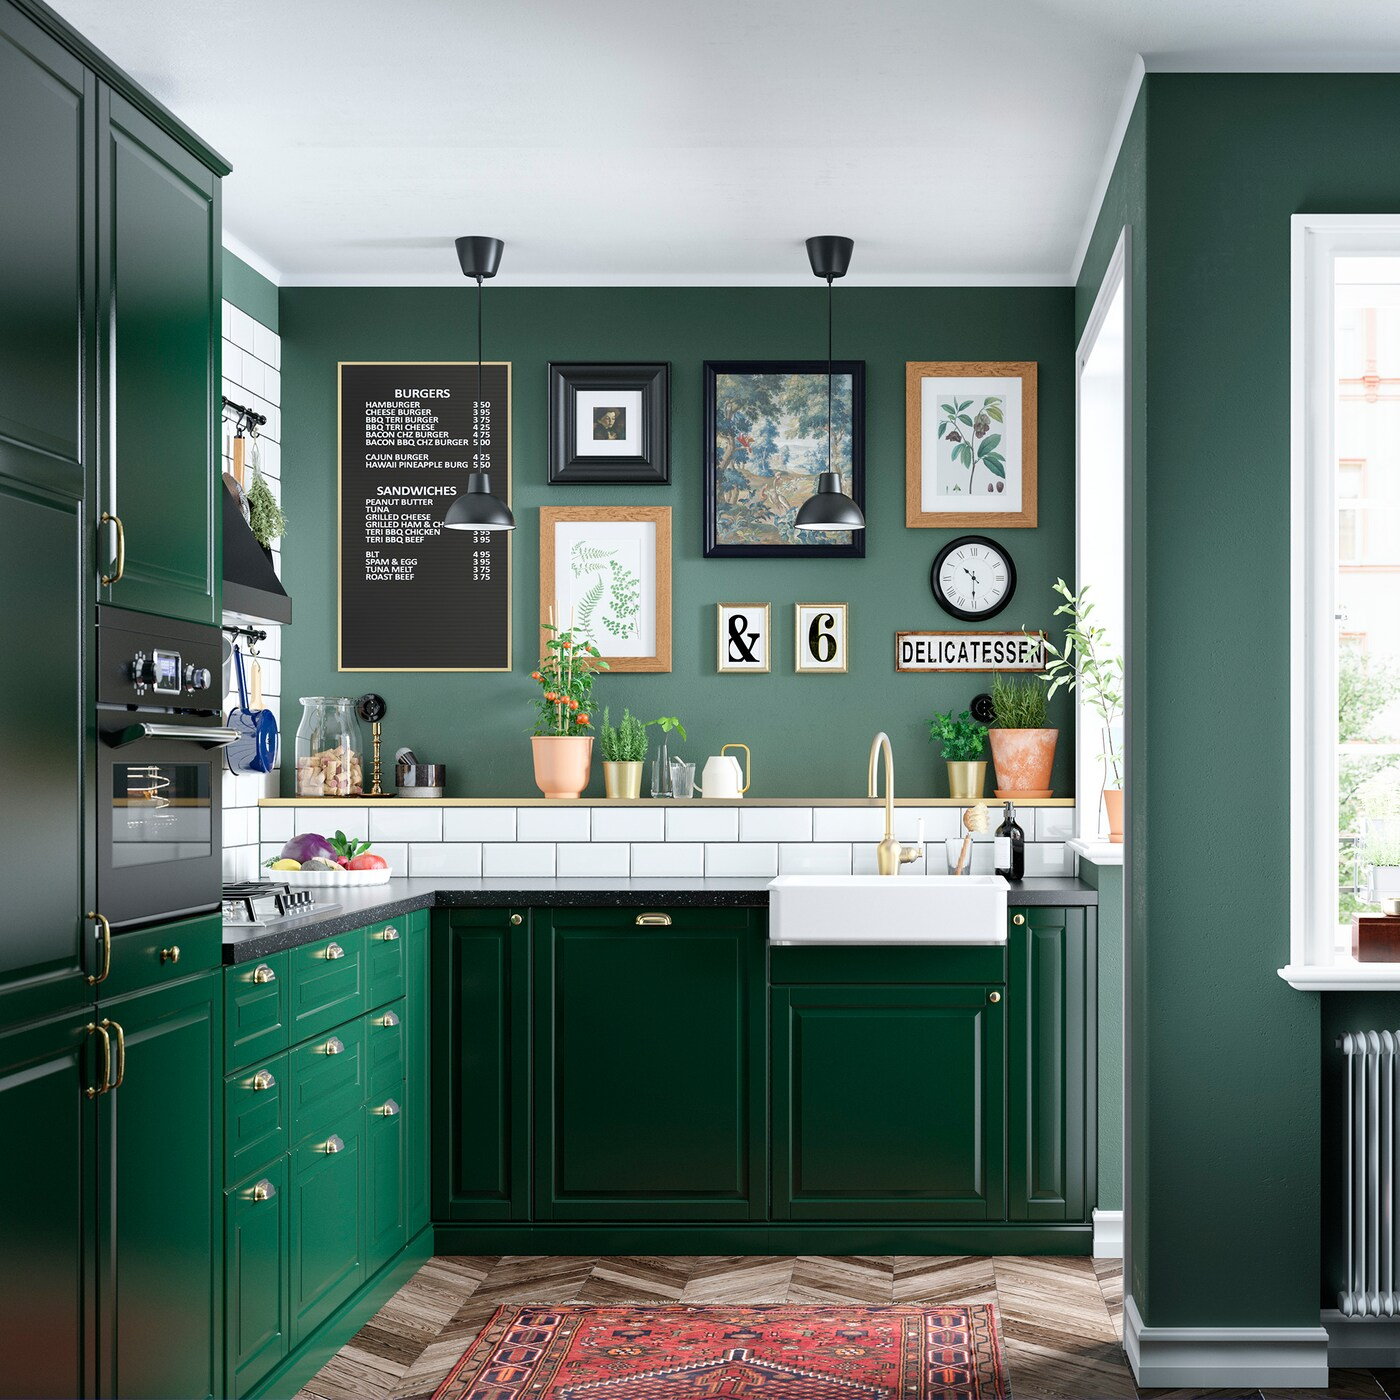 Kitchen Design | Kitchen Ideas & Inspiration - IKEA on green wall modern, green wall dining room, green wall architecture, green wall lighting, green wall curtains, green wall color combinations, green wall floor plan, green wall interior, green wall home, green wall exterior, green wall living room,